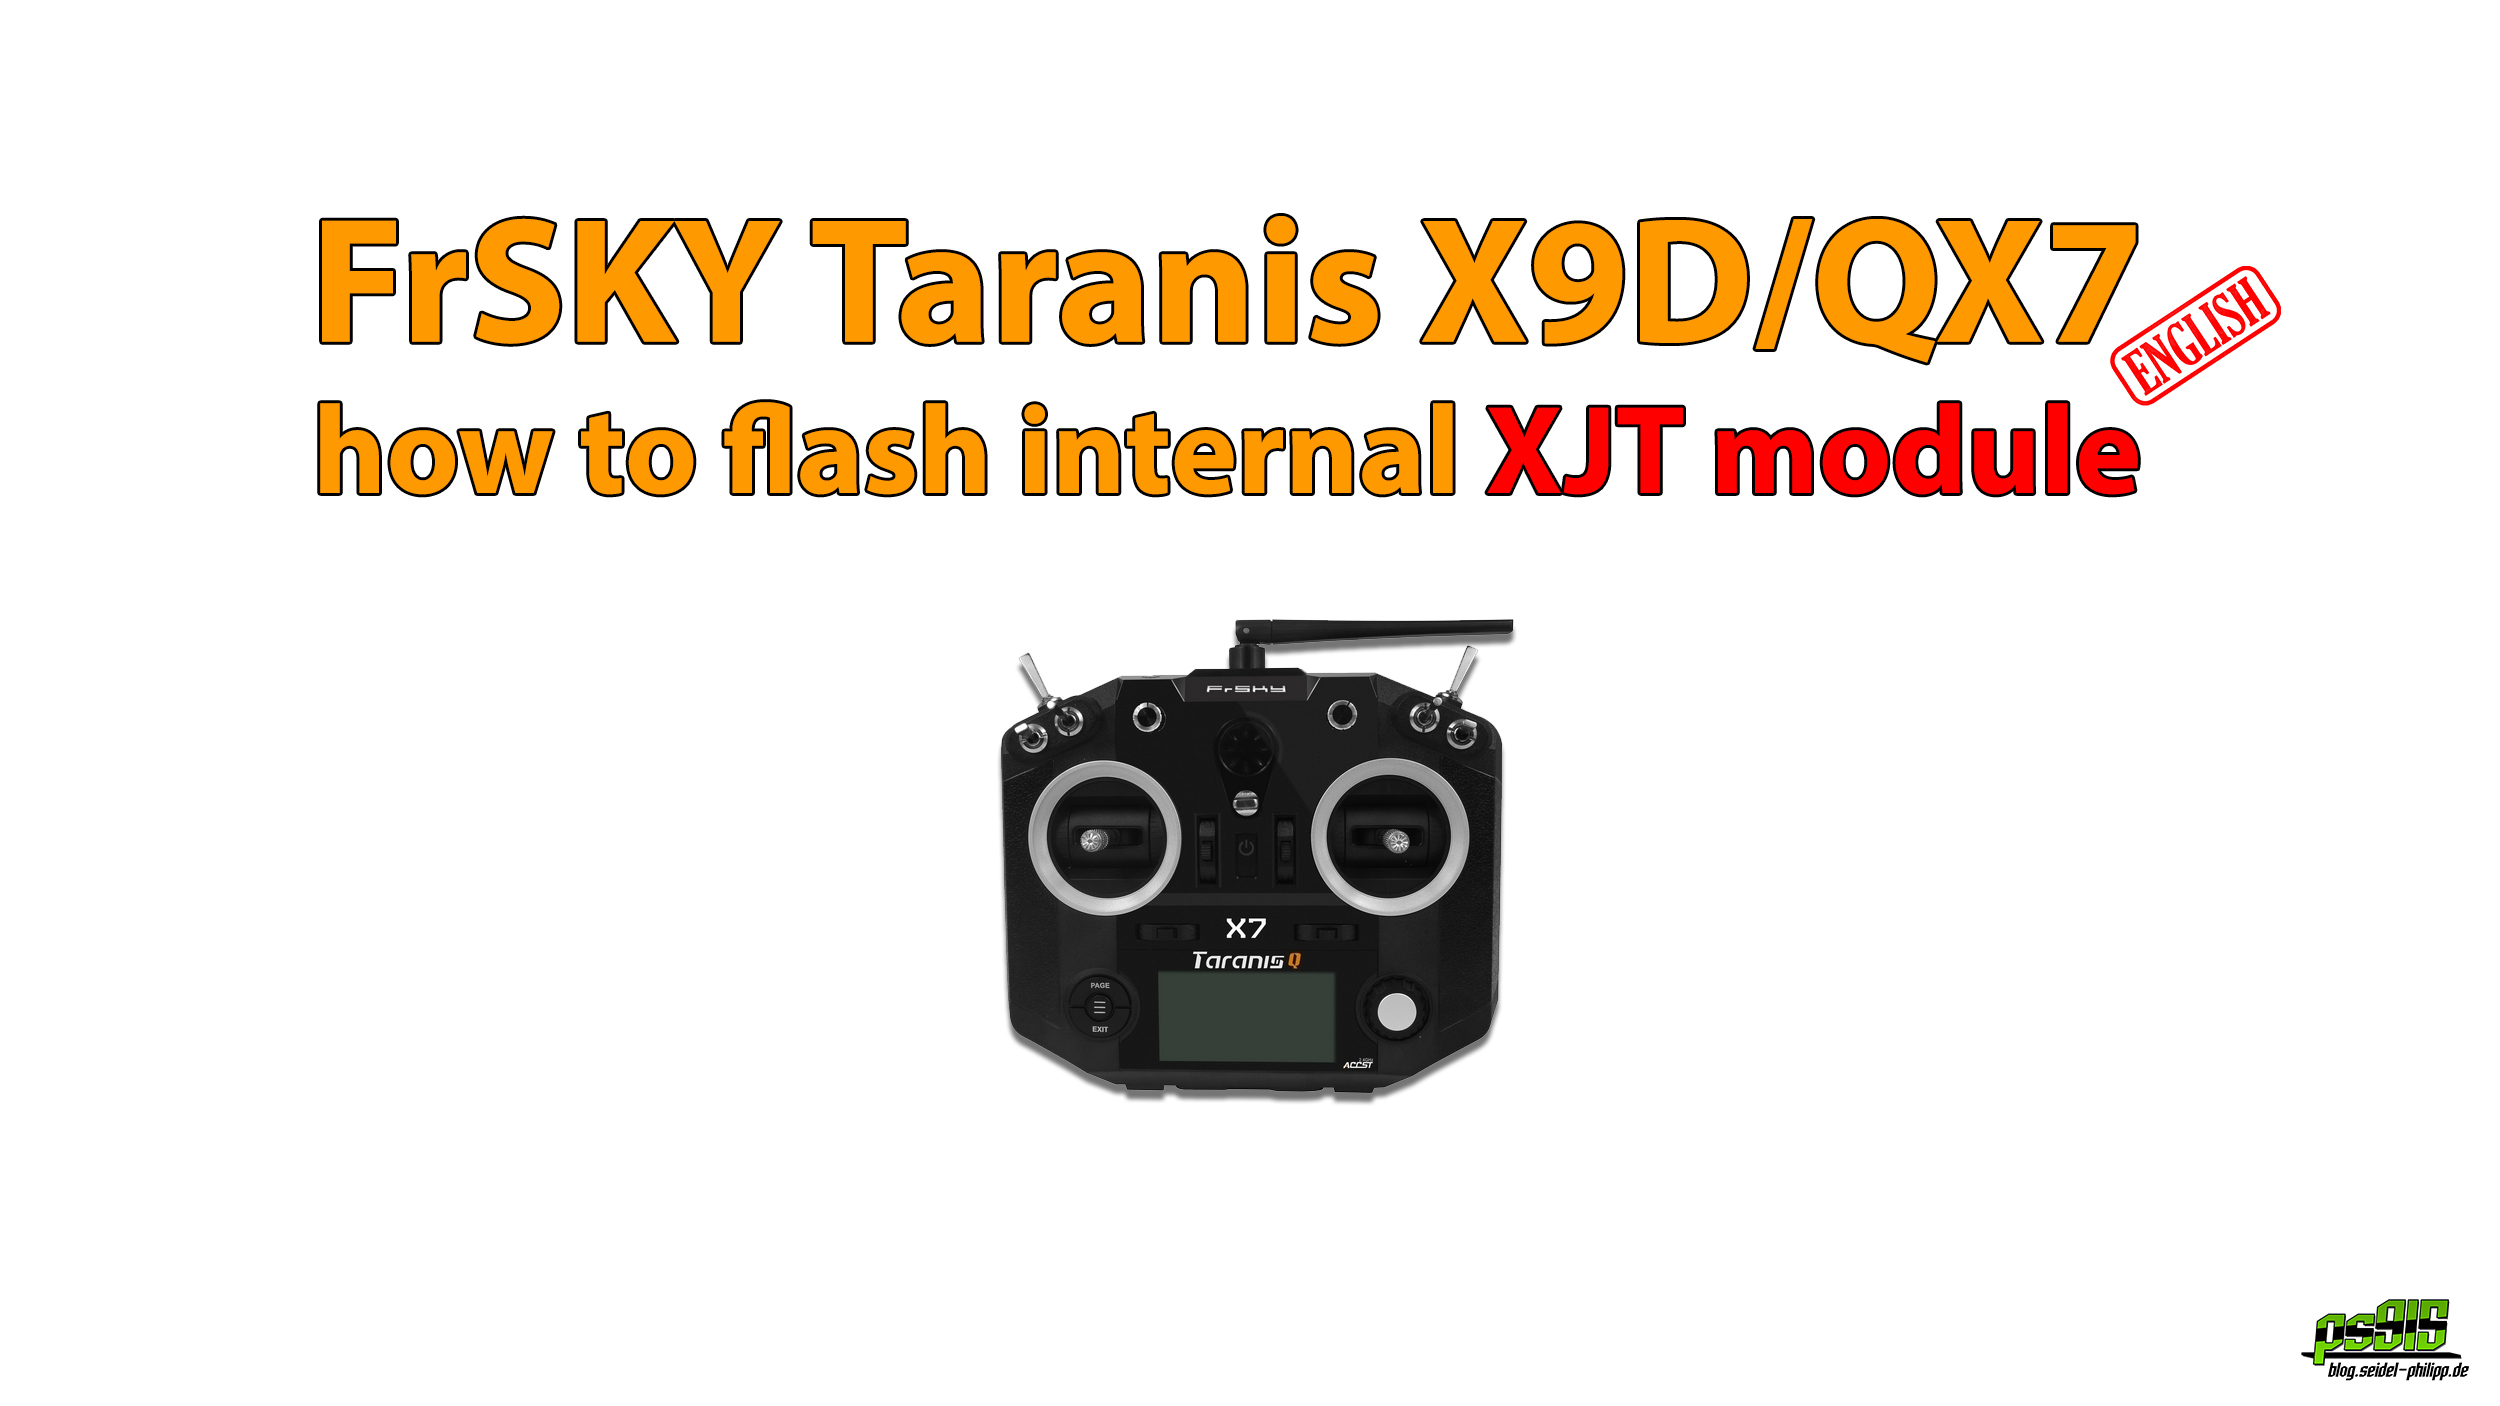 FrSKY Taranis X9D/QX7/S - How to flash internal XJT module